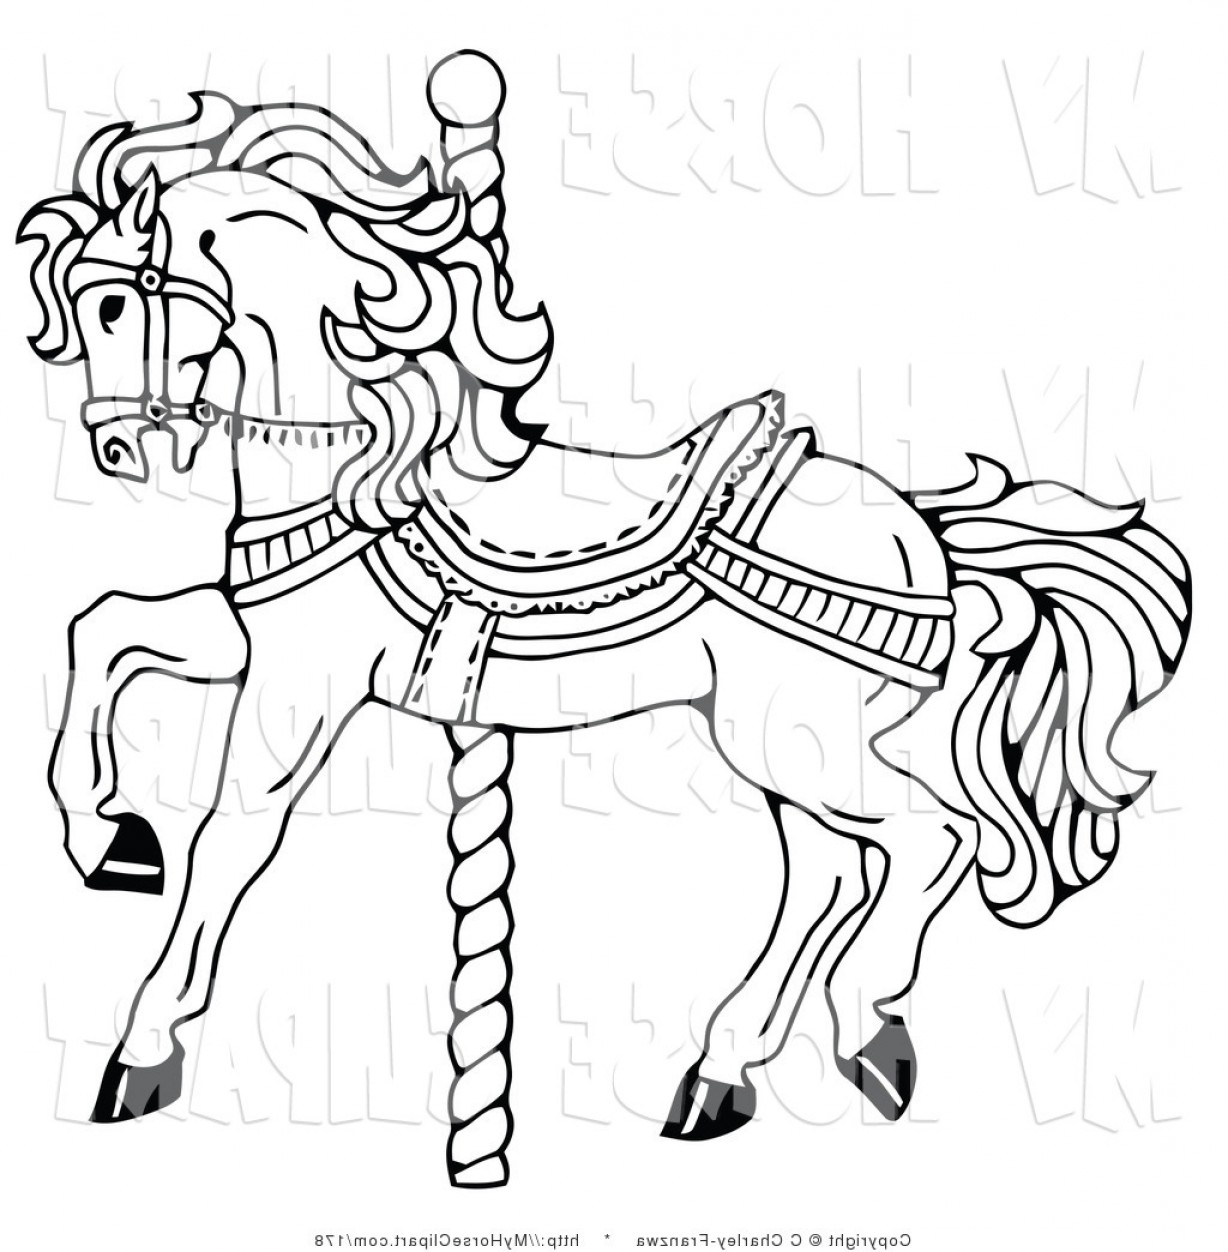 Carousel Clipart Pole Carousel Pole Transparent Free For Download On Webstockreview 2020